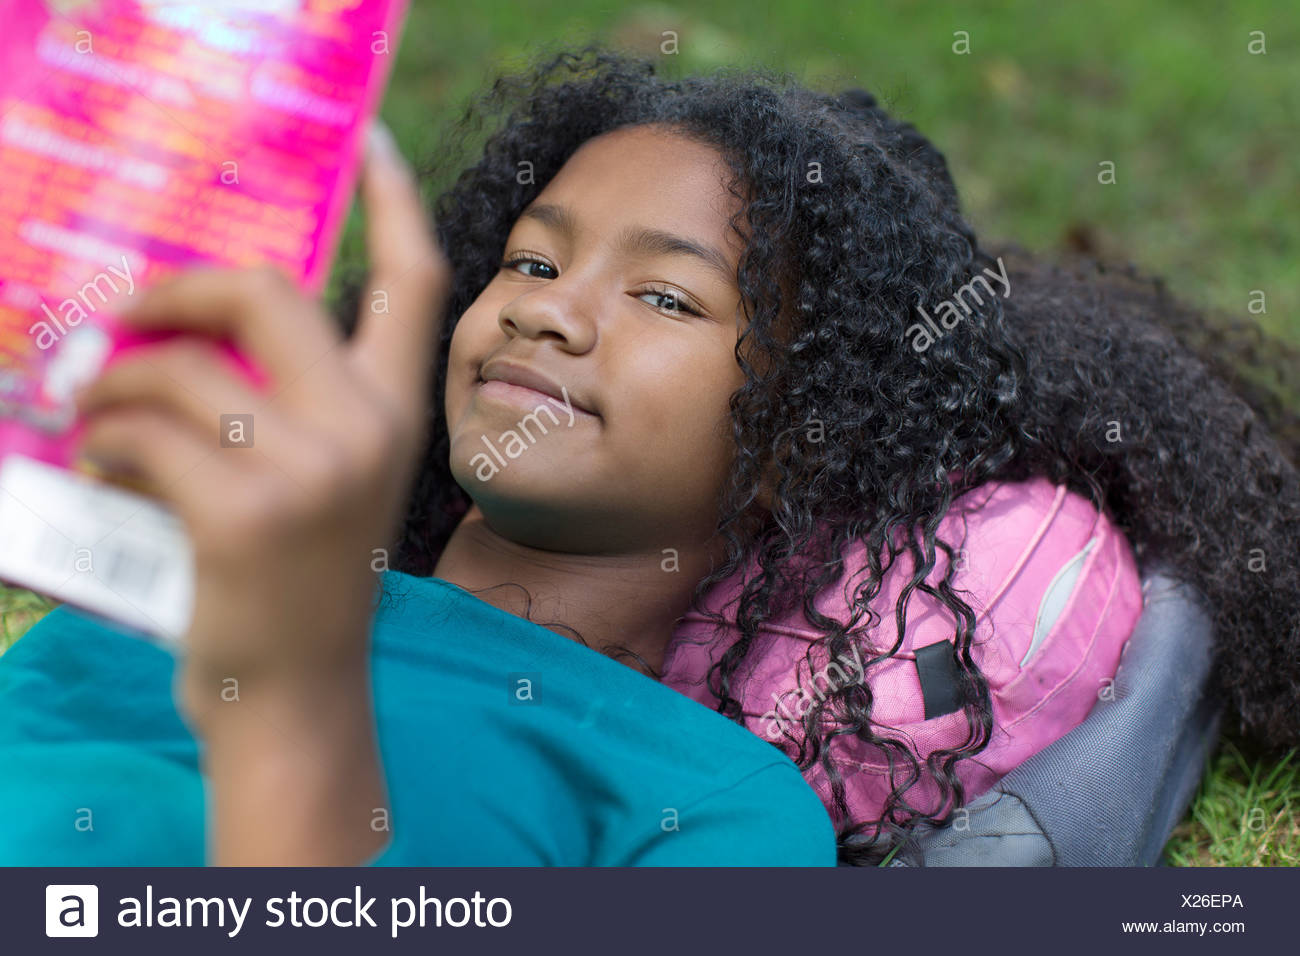 Close up portrait of young girl reading in park - Stock Image